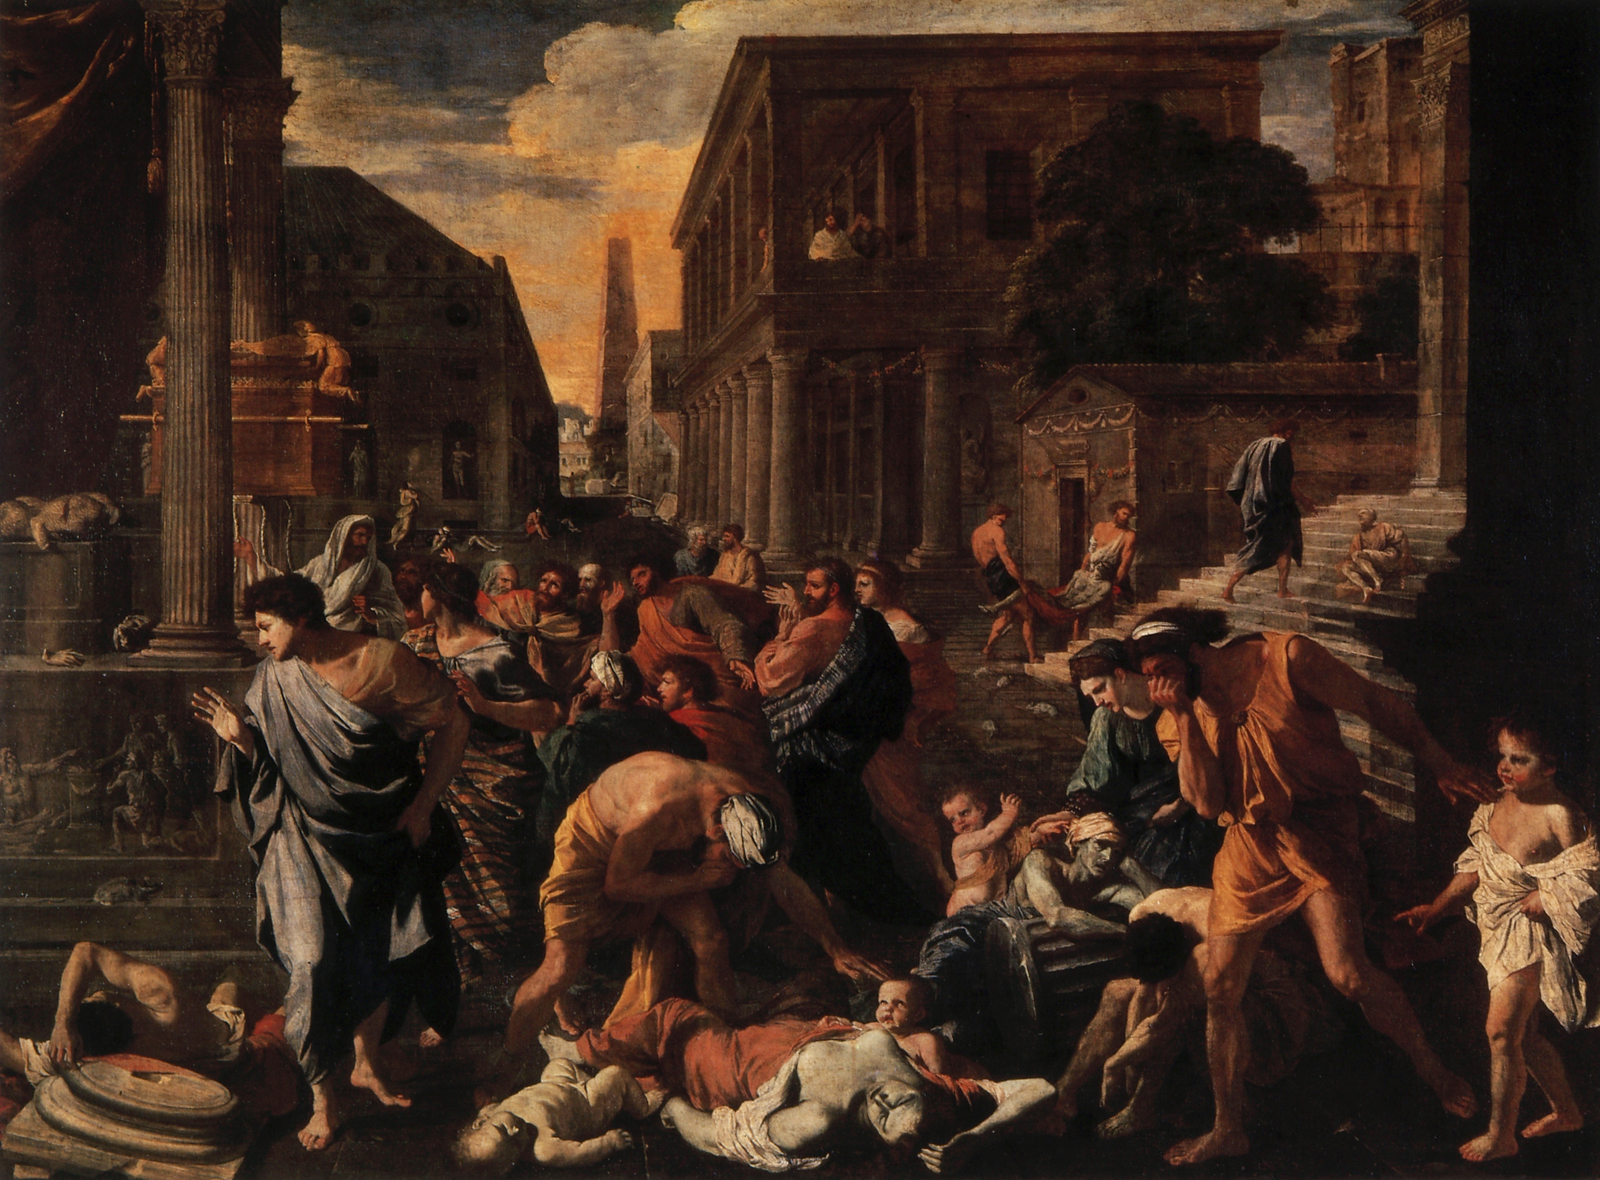 Poussin Plague at Ashdod